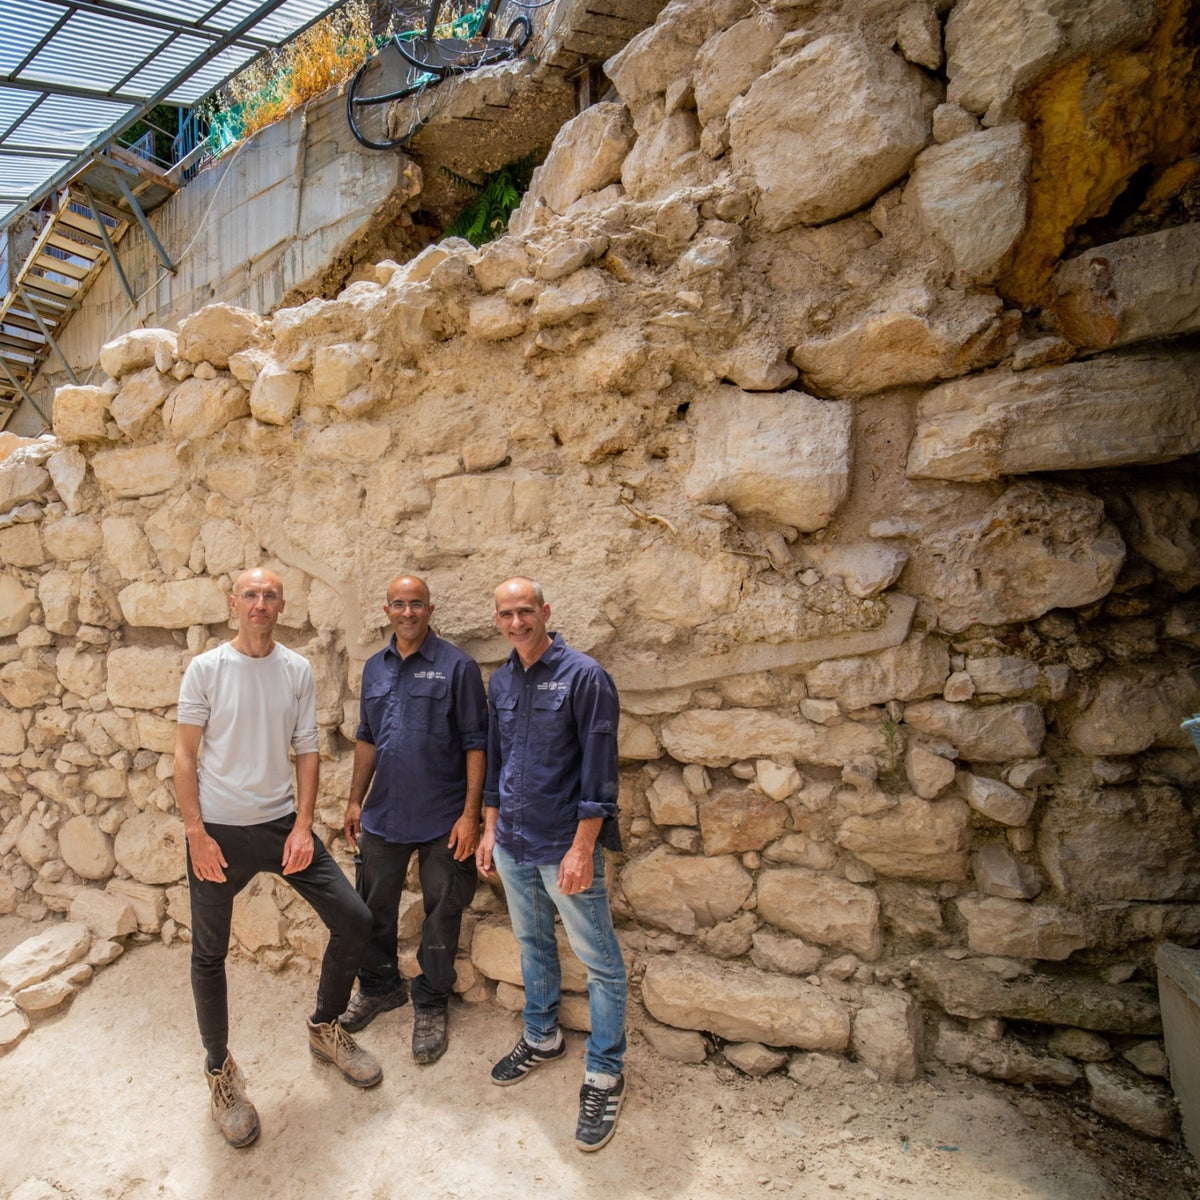 Excavation directors Dr. Joe Uziel, Ortal Kalaf, and Dr. Filip Vukosavovic standing by the newly discovered section of Jerusalem's ancient defensive wall.